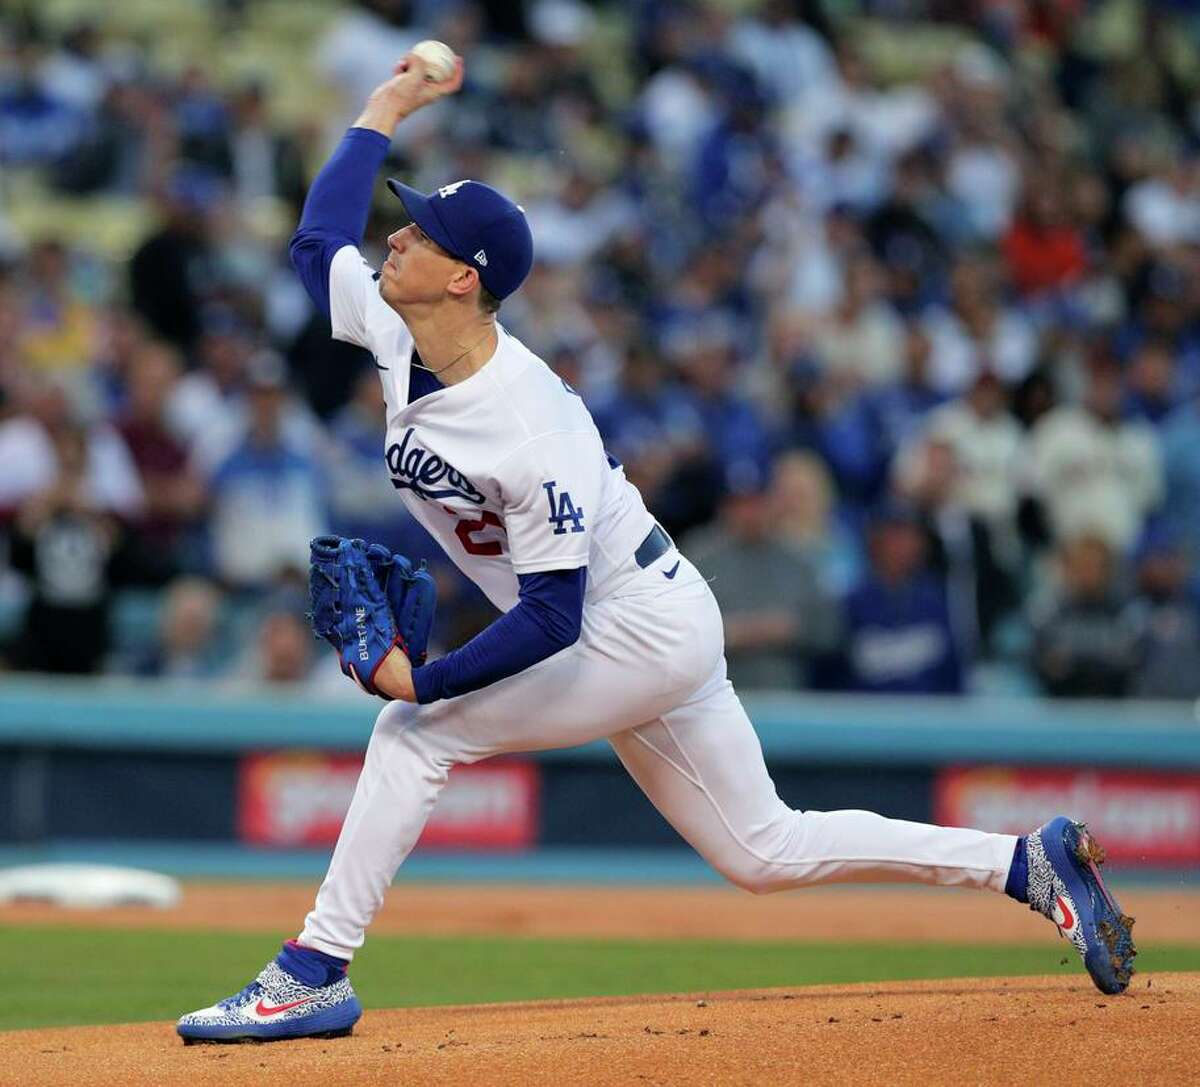 Los Angeles Dodgers starting pitcher Walker Buehler (21) throws during the first inning as the San Francisco Giants played the Los Angeles Dodgers in Game 4 of the National League Division Series at Dodger Stadium in Los Angeles, Calif. on Tuesday, Oct. 12, 2021.